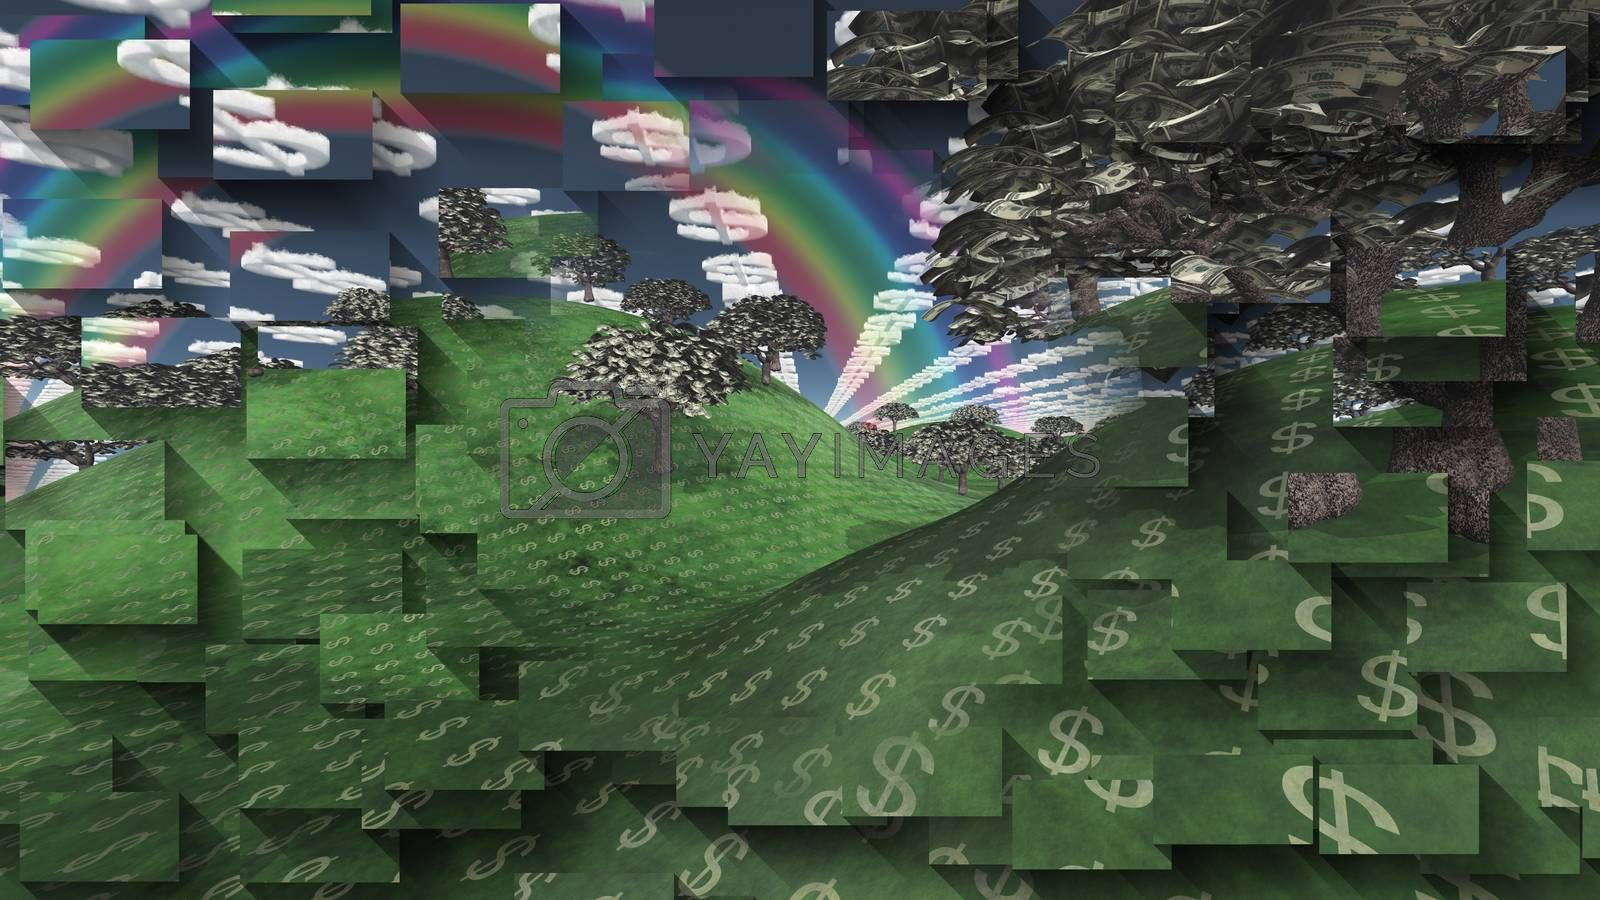 Surreal digital art. Landscape with currency elements. Trees with dollars banknotes instead of leaves. Clouds in shape of dollars sign. Rainbow in the sky.